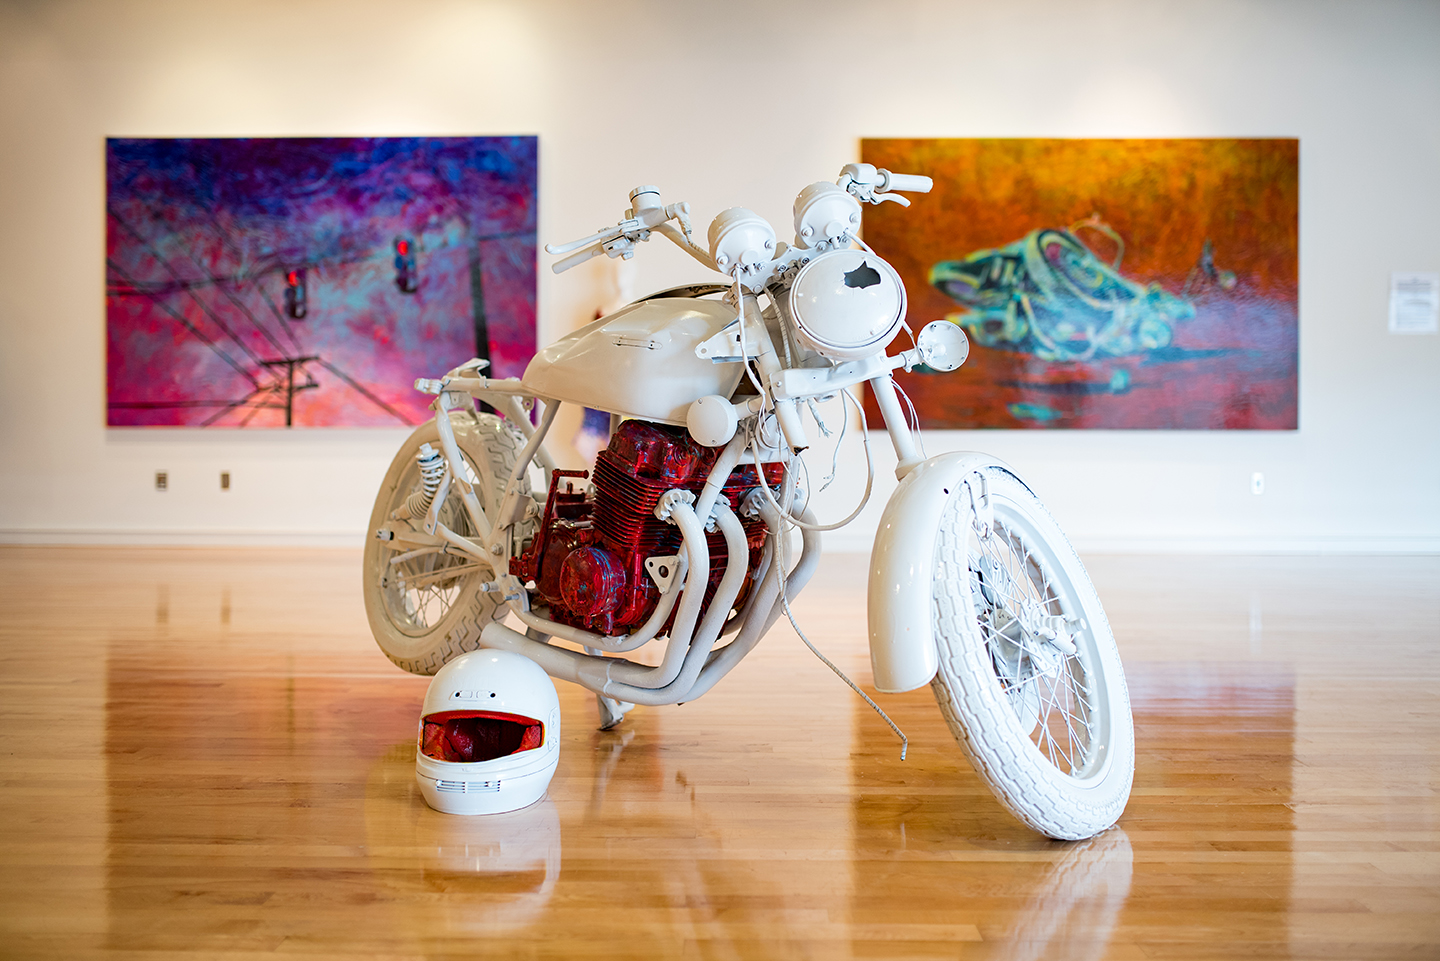 """Wrecked Bike""   by Lennon Michalski, 36 x 48 x 84 in, Honda Motorcycle and paint (2016) 